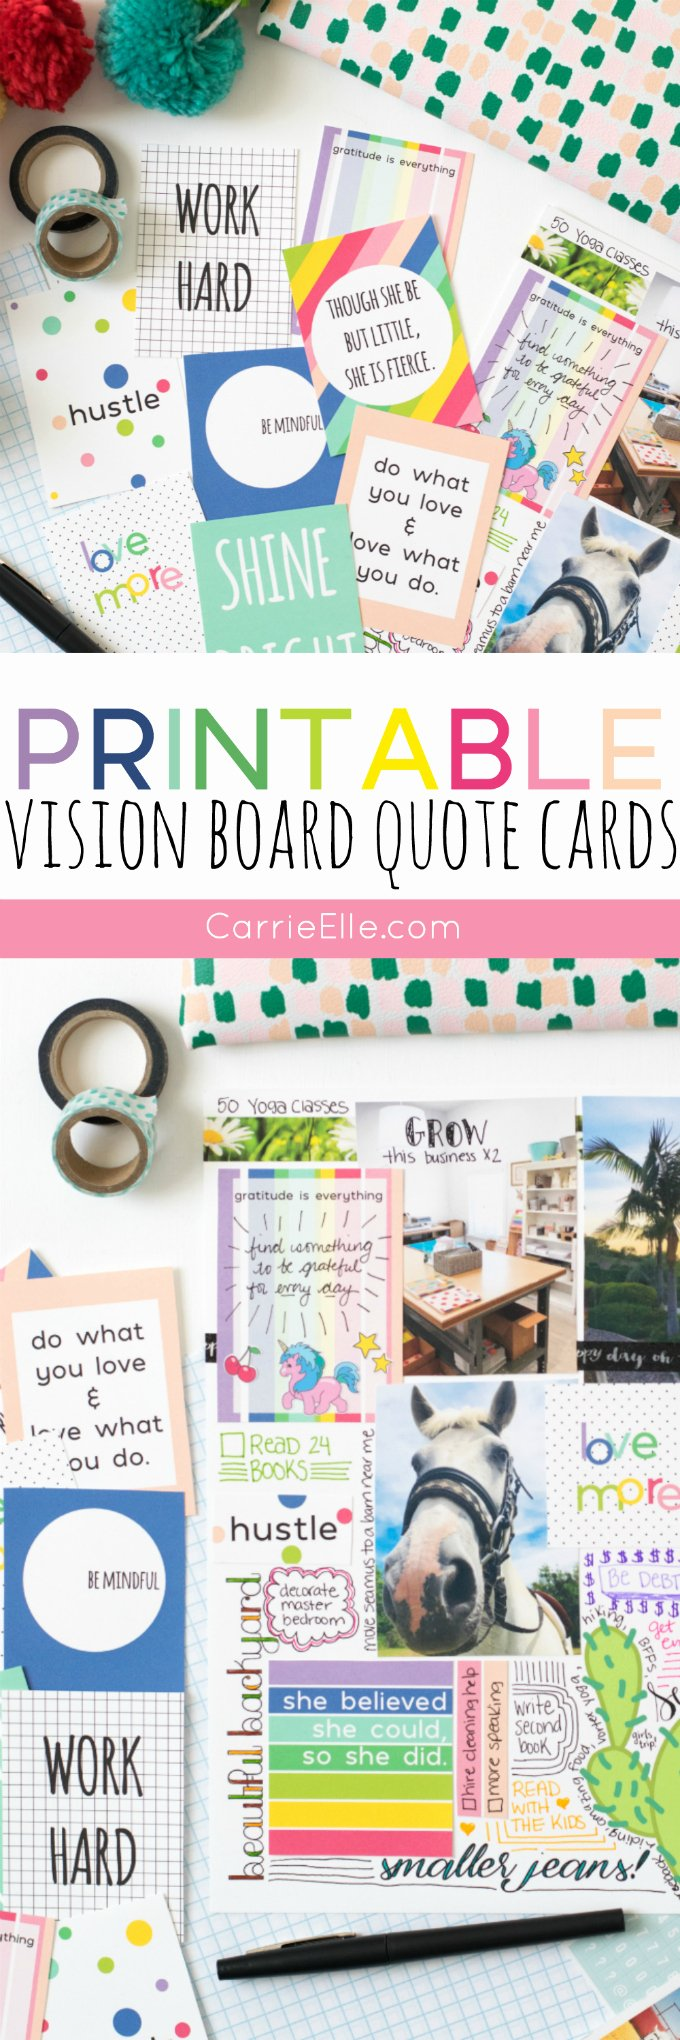 Printable Vision Board Template Inspirational Vision Board Printable Quote Cards Carrie Elle